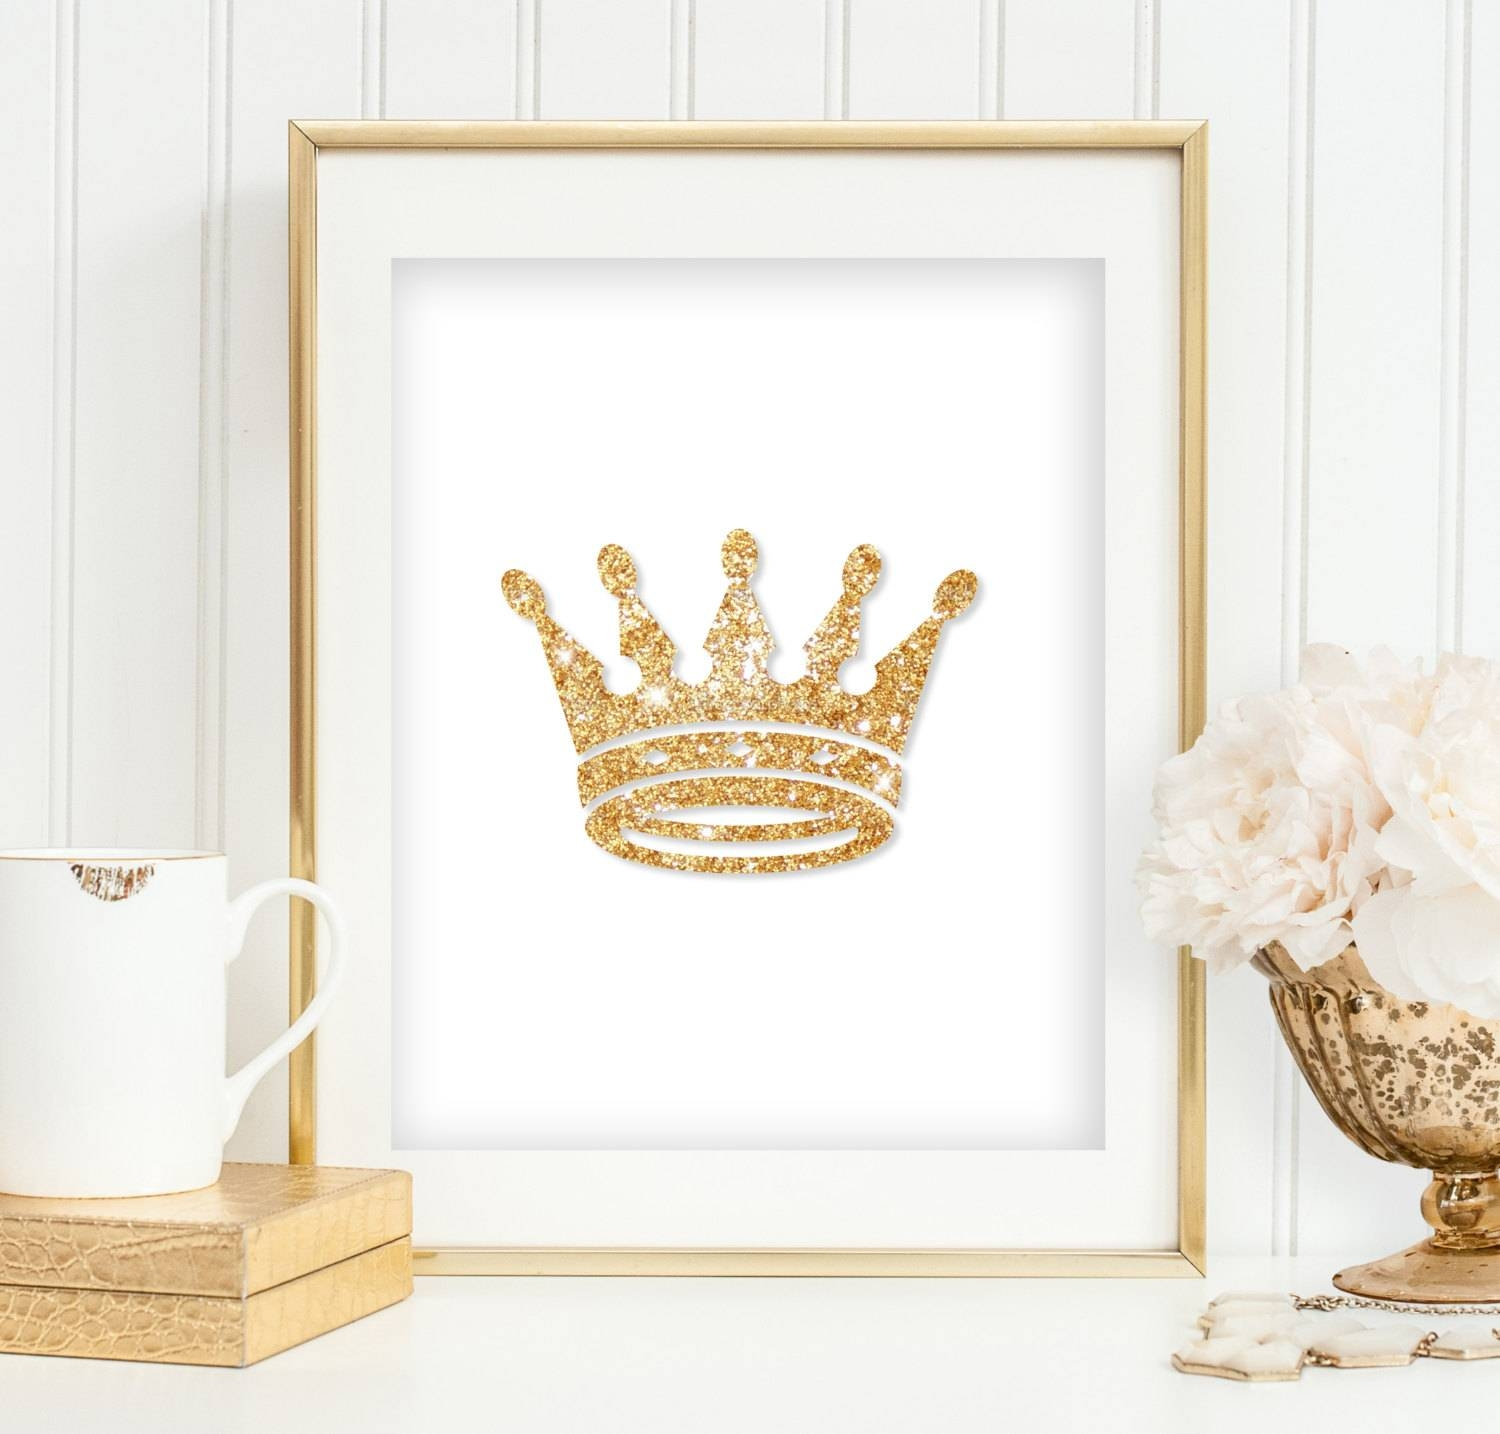 Gold Glitter Crown Print Girl's Bedroom Wall Art Princess Intended For 2018 Princess Crown Wall Art (View 12 of 25)